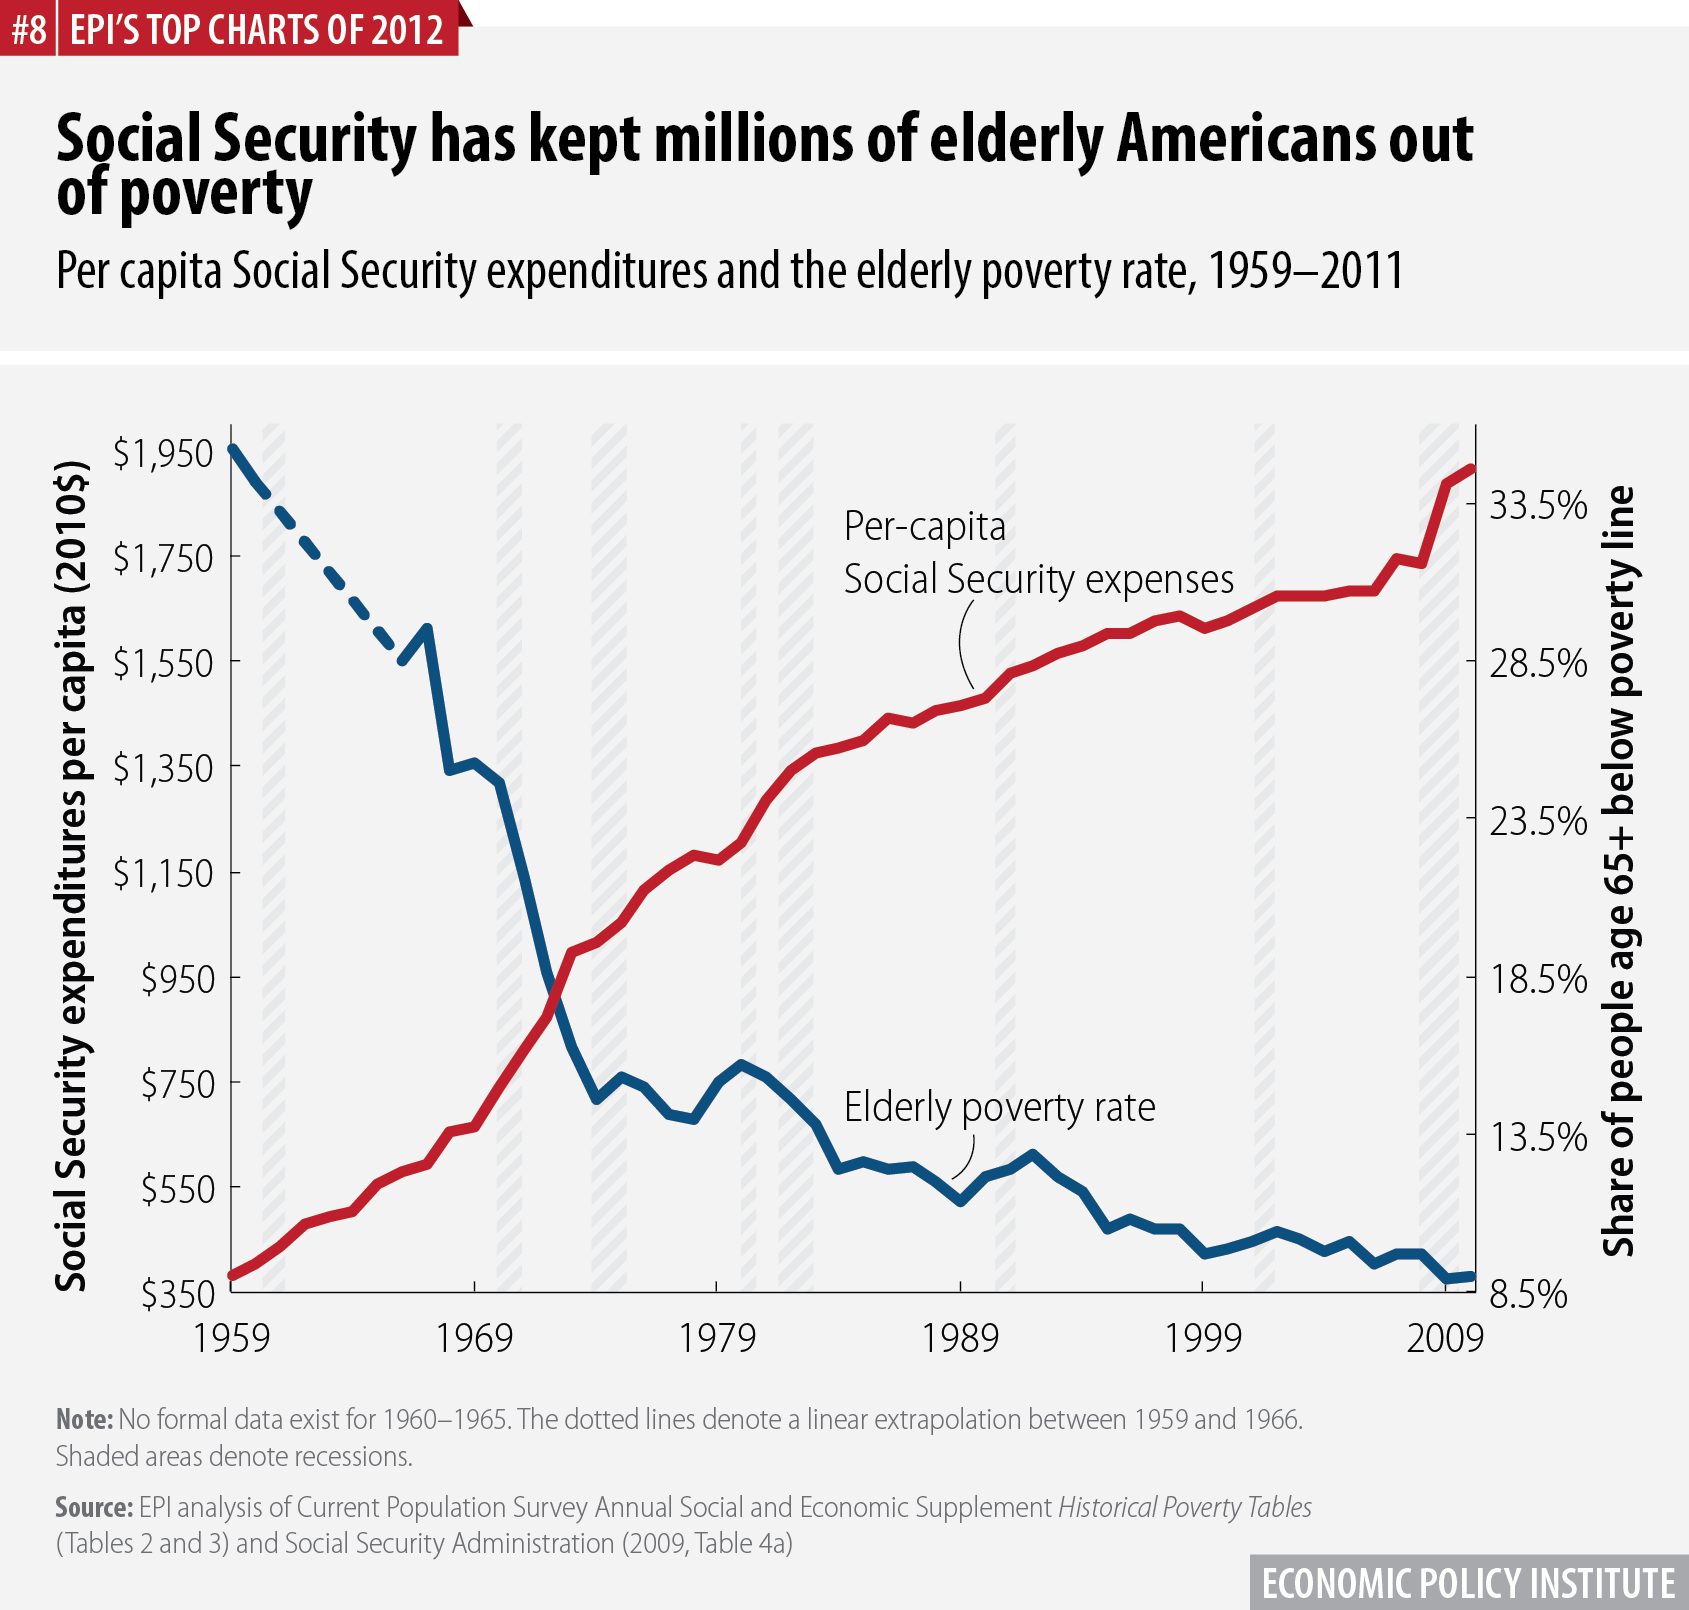 Social Security has kept millions of elderly Americans out of poverty | Per capita Social Security expenditures and the elderly poverty rate, 1959–2011